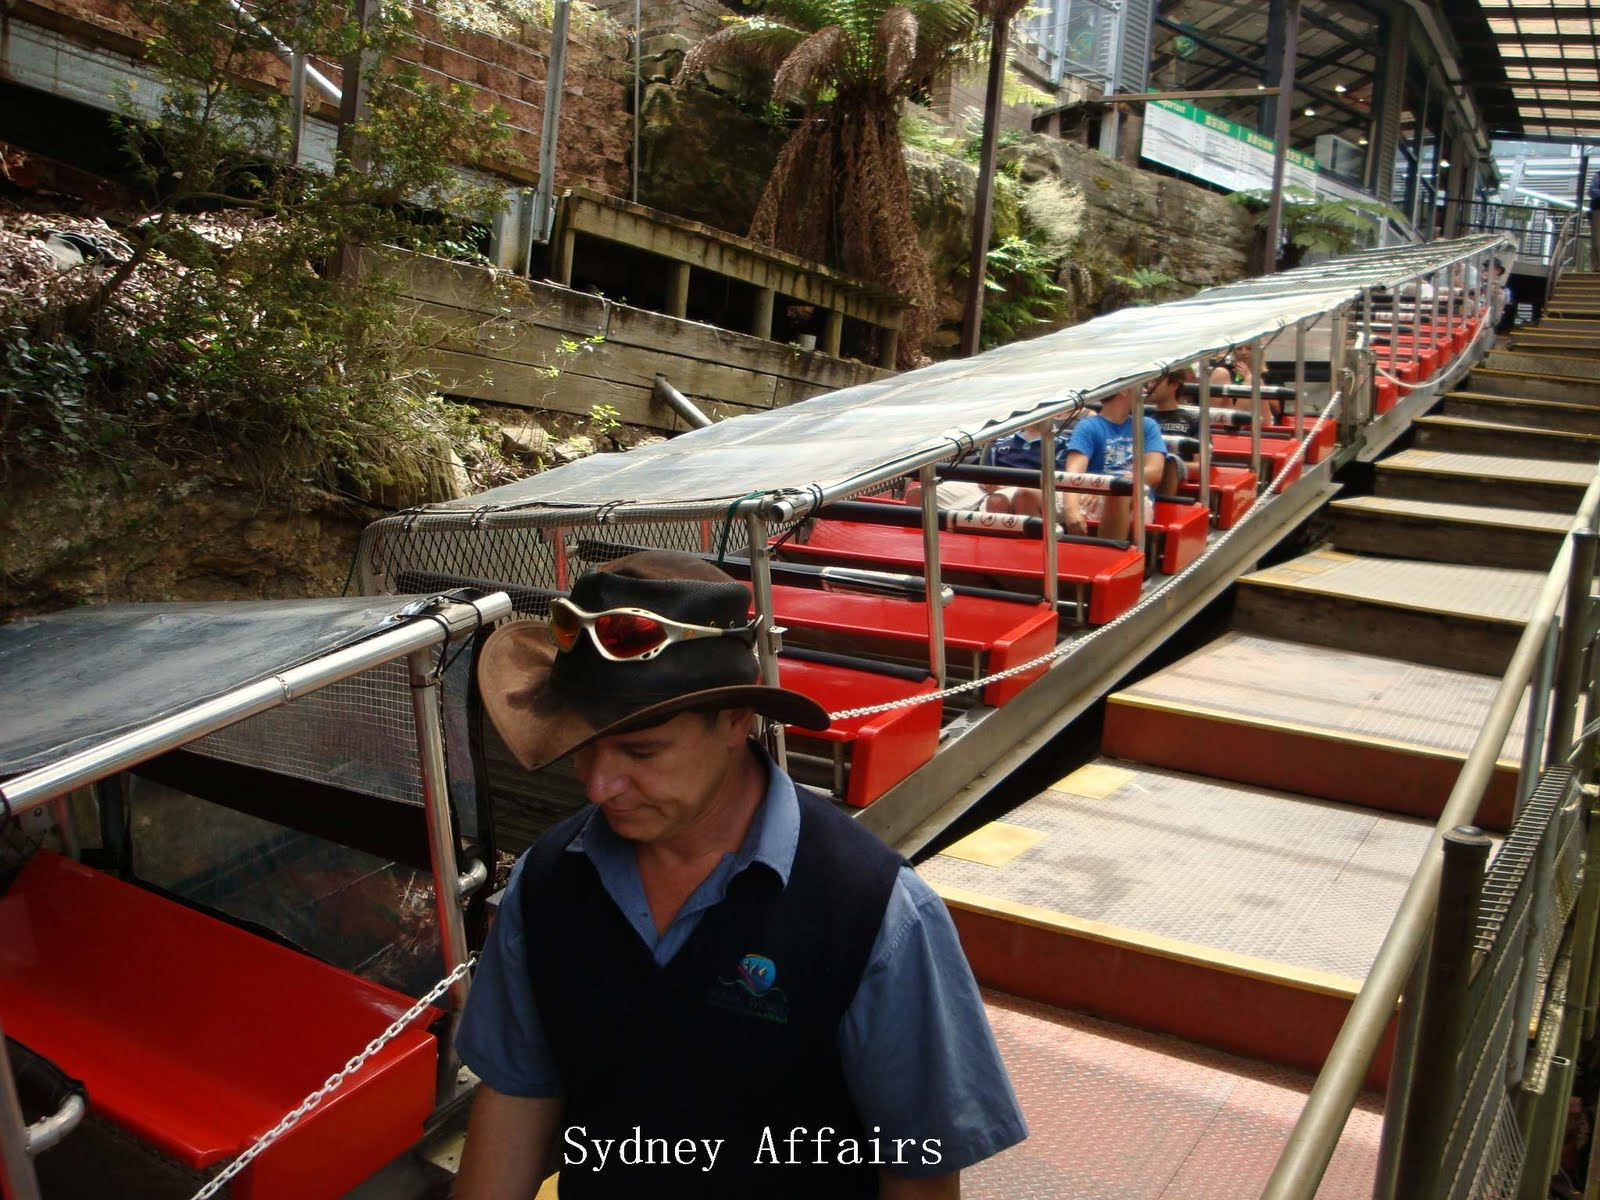 sydney blue mountains train - photo#5